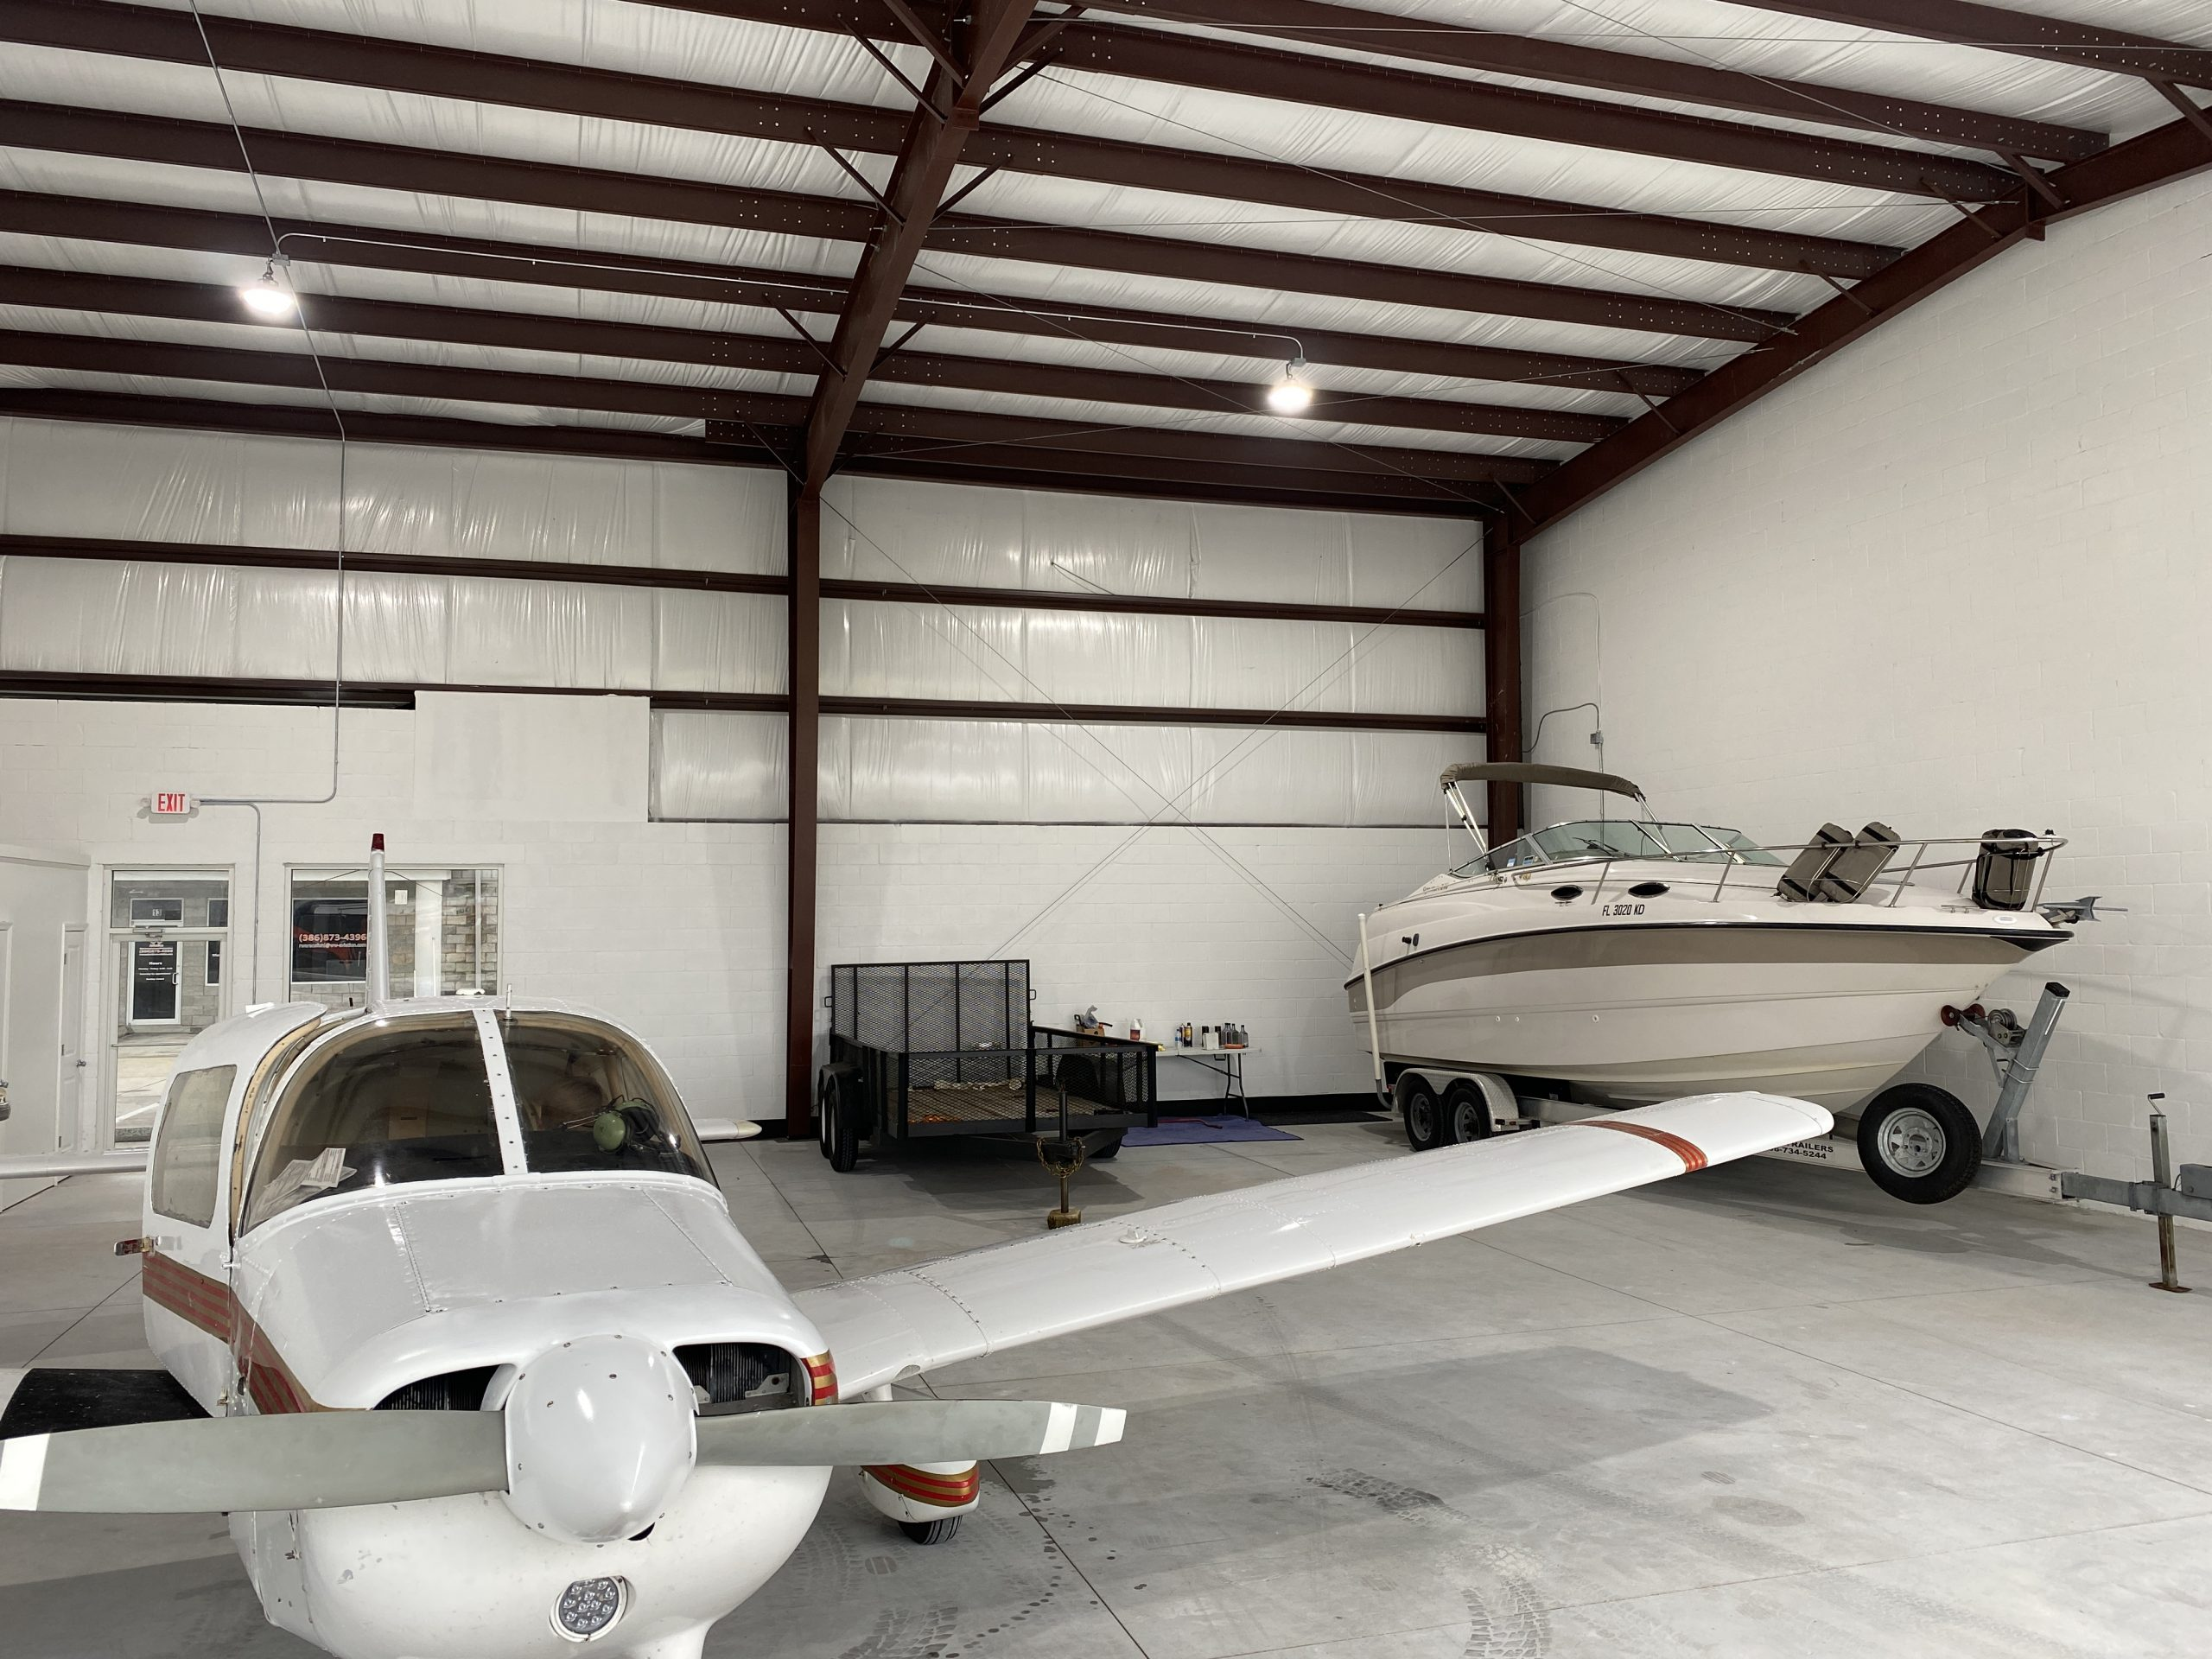 Recently Painted top half white and now in the Deland Hangar Ready for Rental